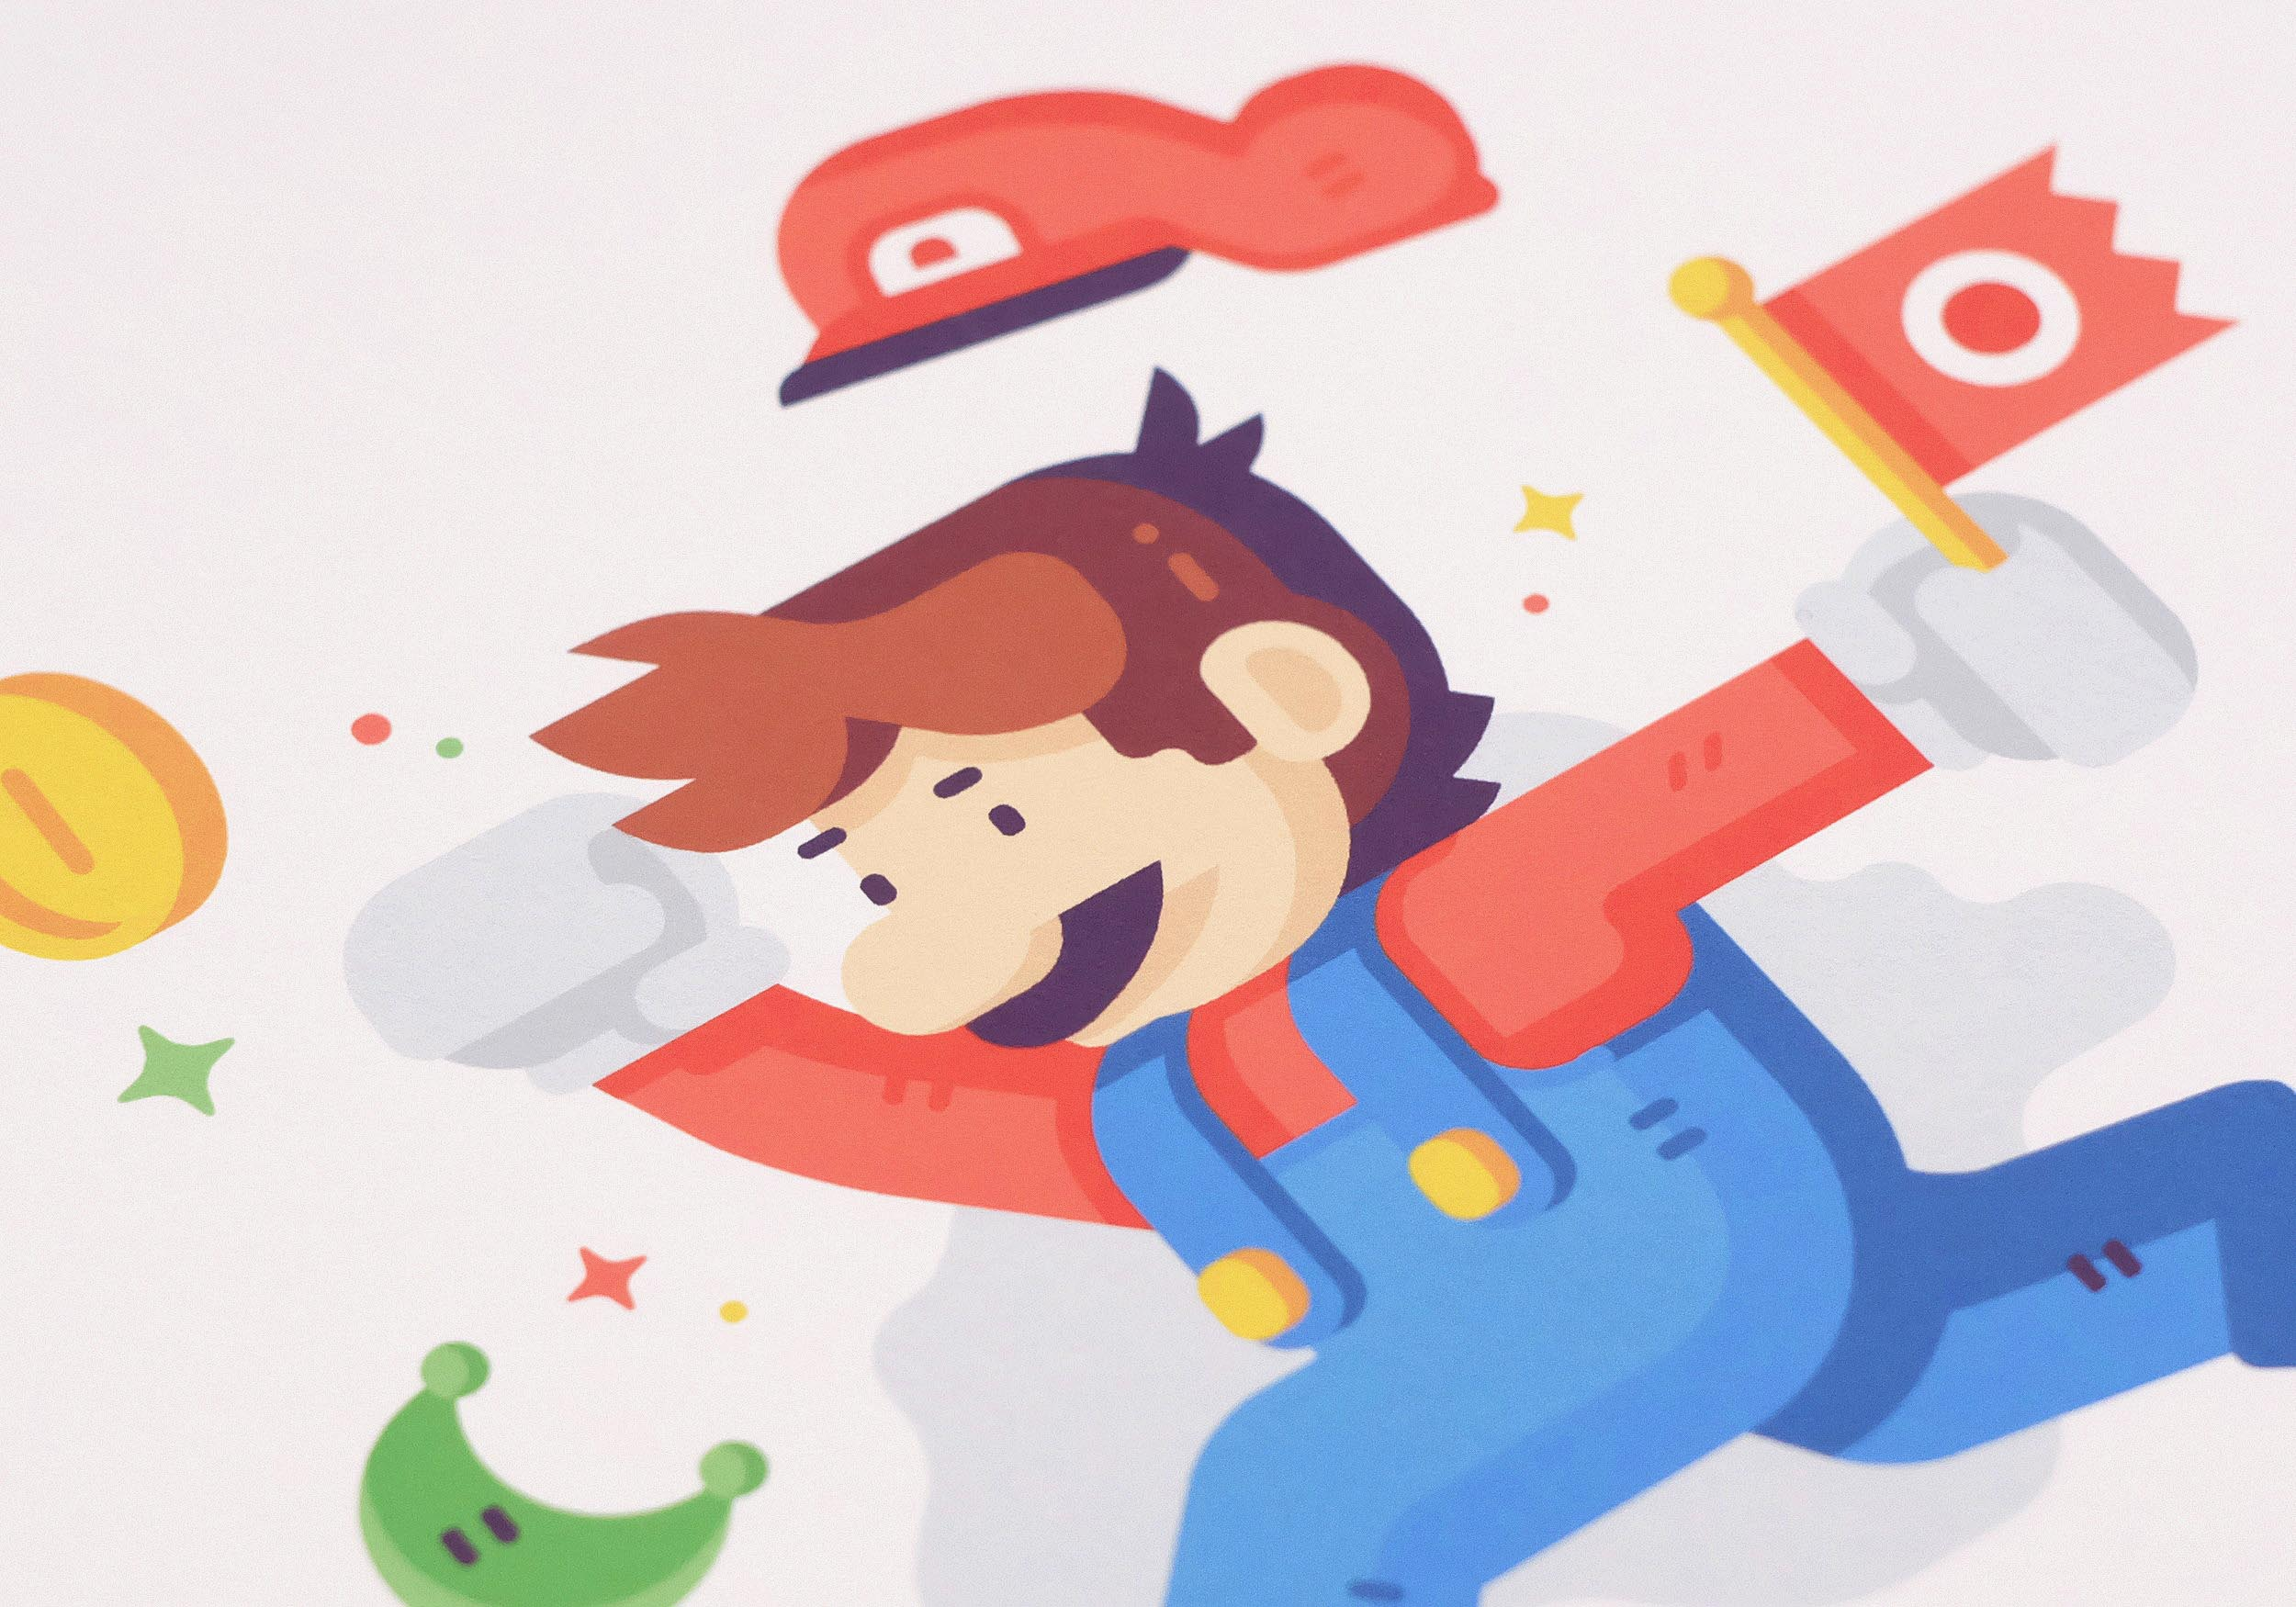 Jump Man print photo detail Matt Anderson. Inspired by Super Mario Odyssey.